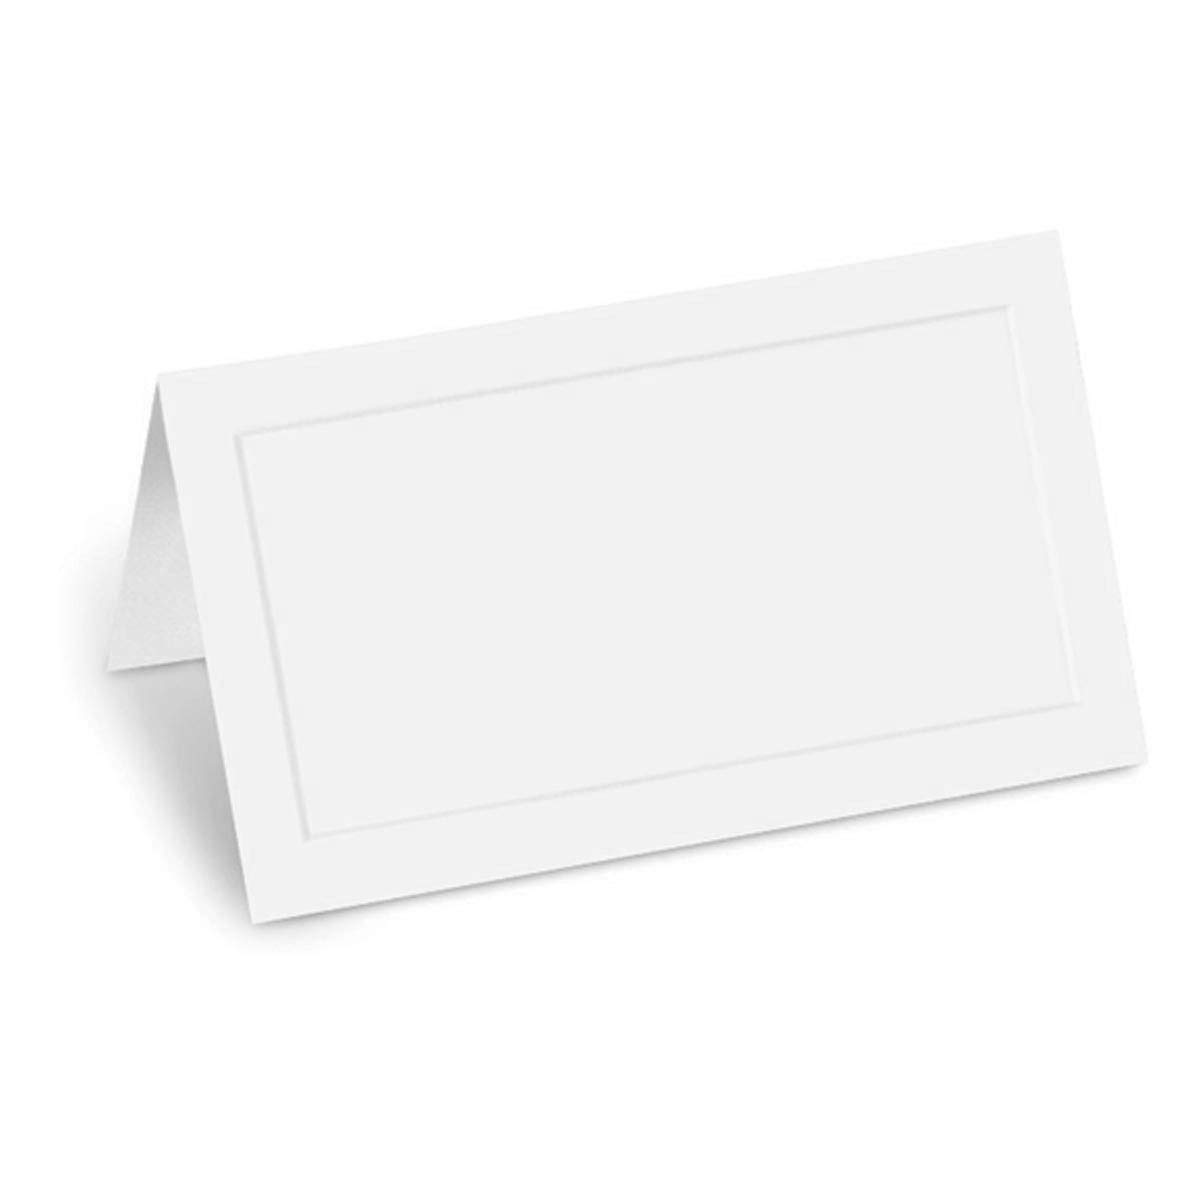 PaperDirect White Dignity Embossed 38lb Cover Stock Folded Place Cards, Micro-Perforated, 2'' x 3 1/2'', 100/pack, Laser and Inkjet Compatible